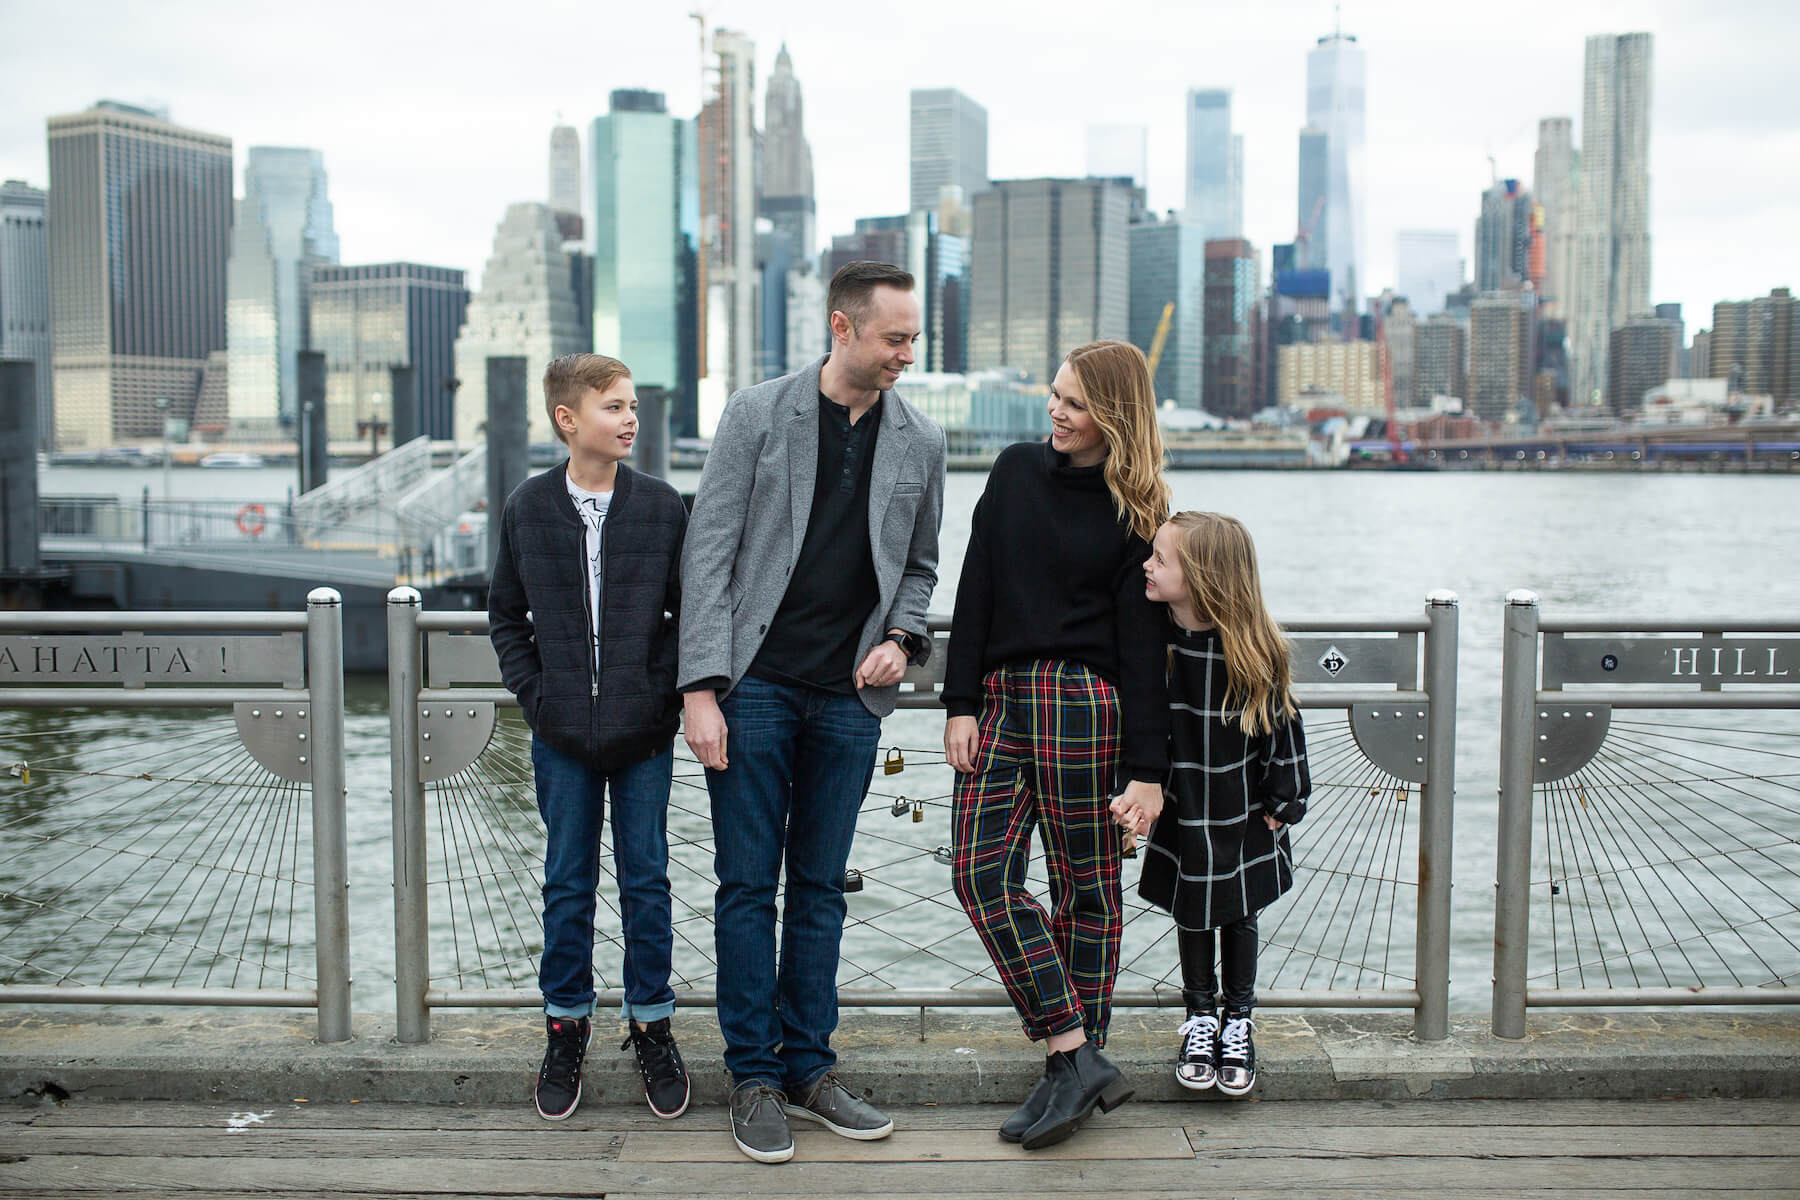 Family in NYC with skyline of NYC in the background